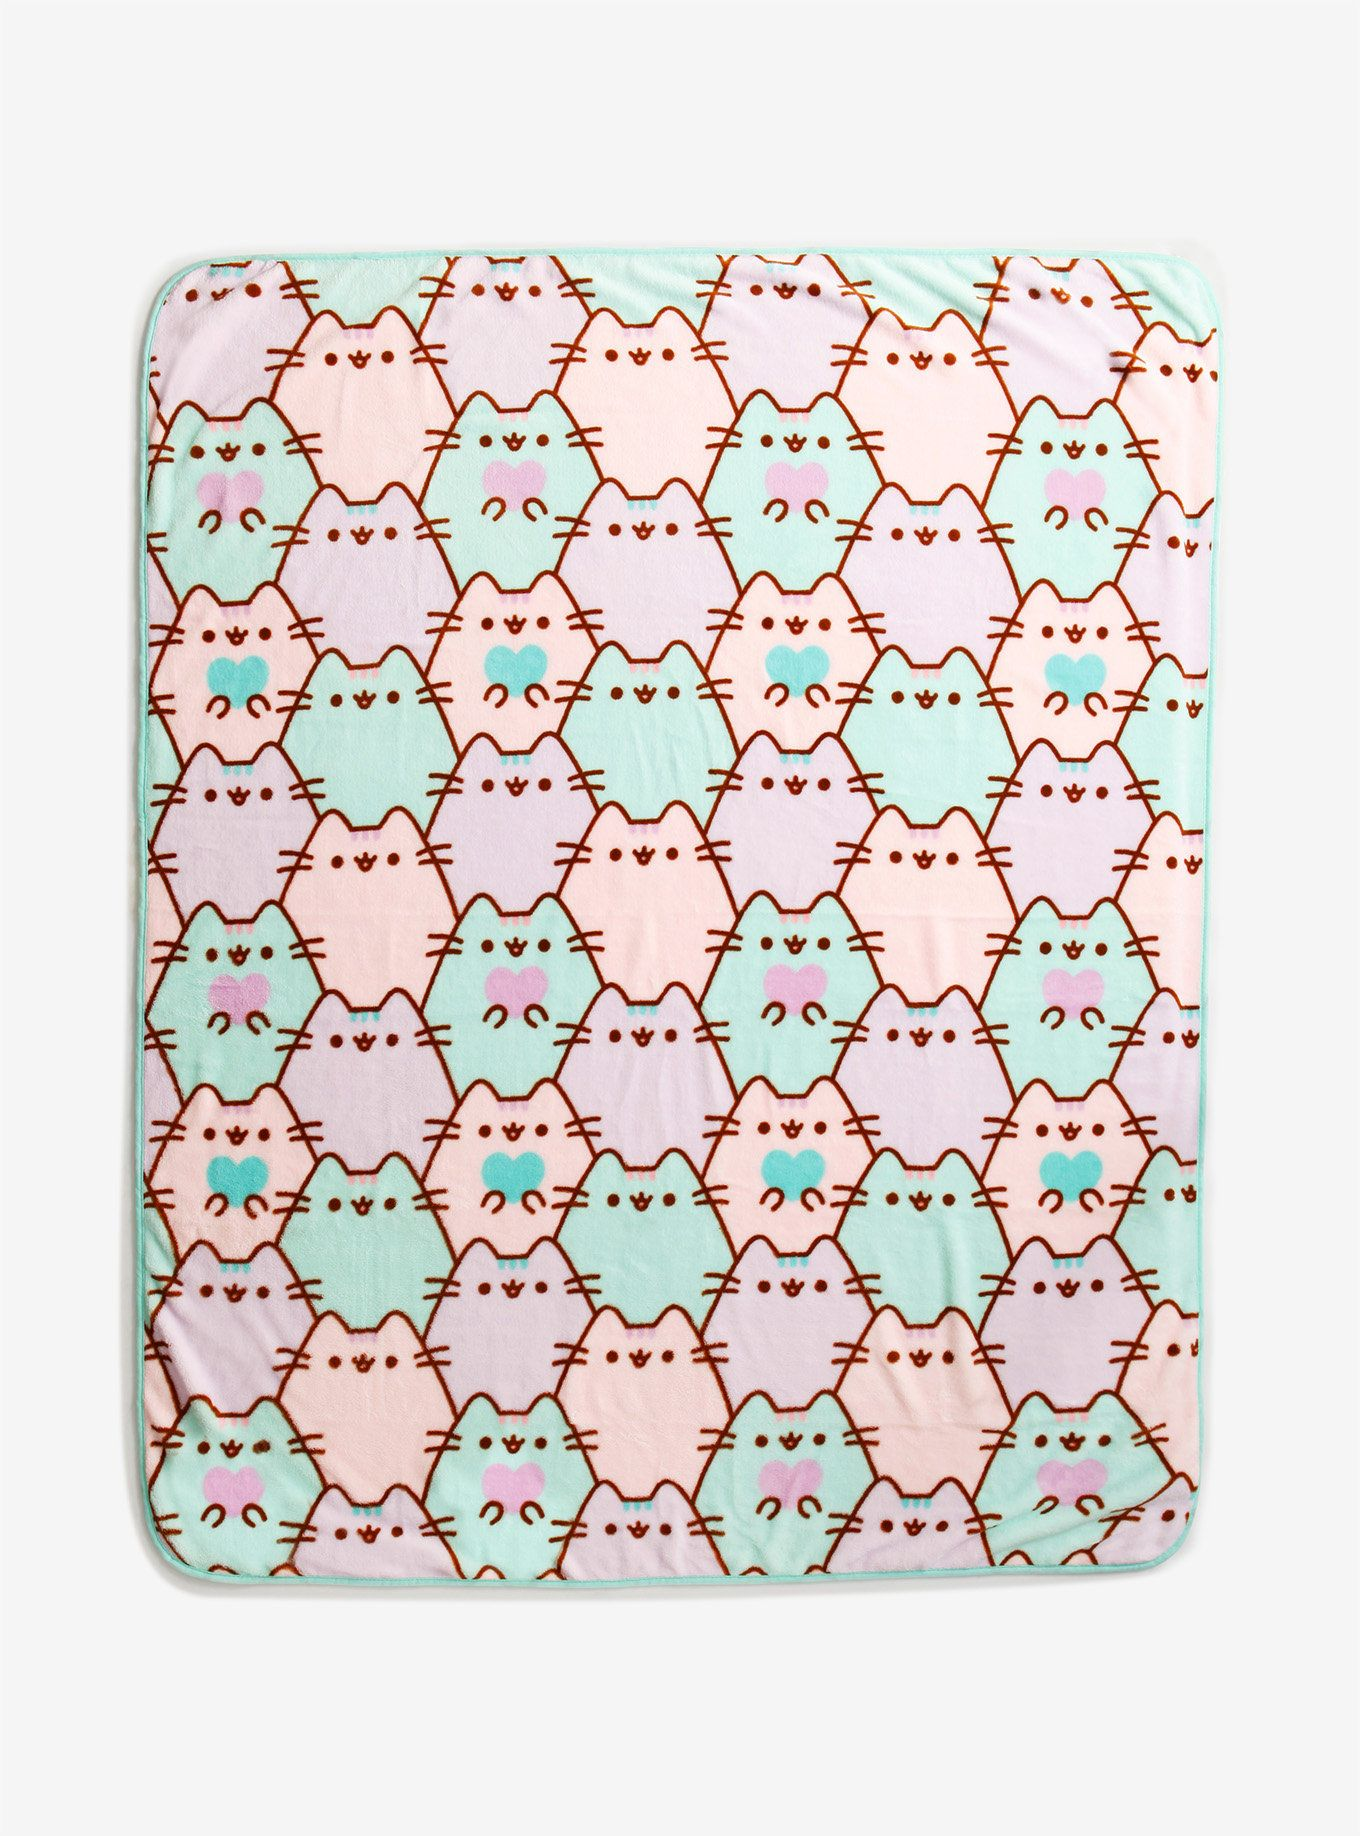 Pusheen Allover Print Throw Blanket Pusheen blanket